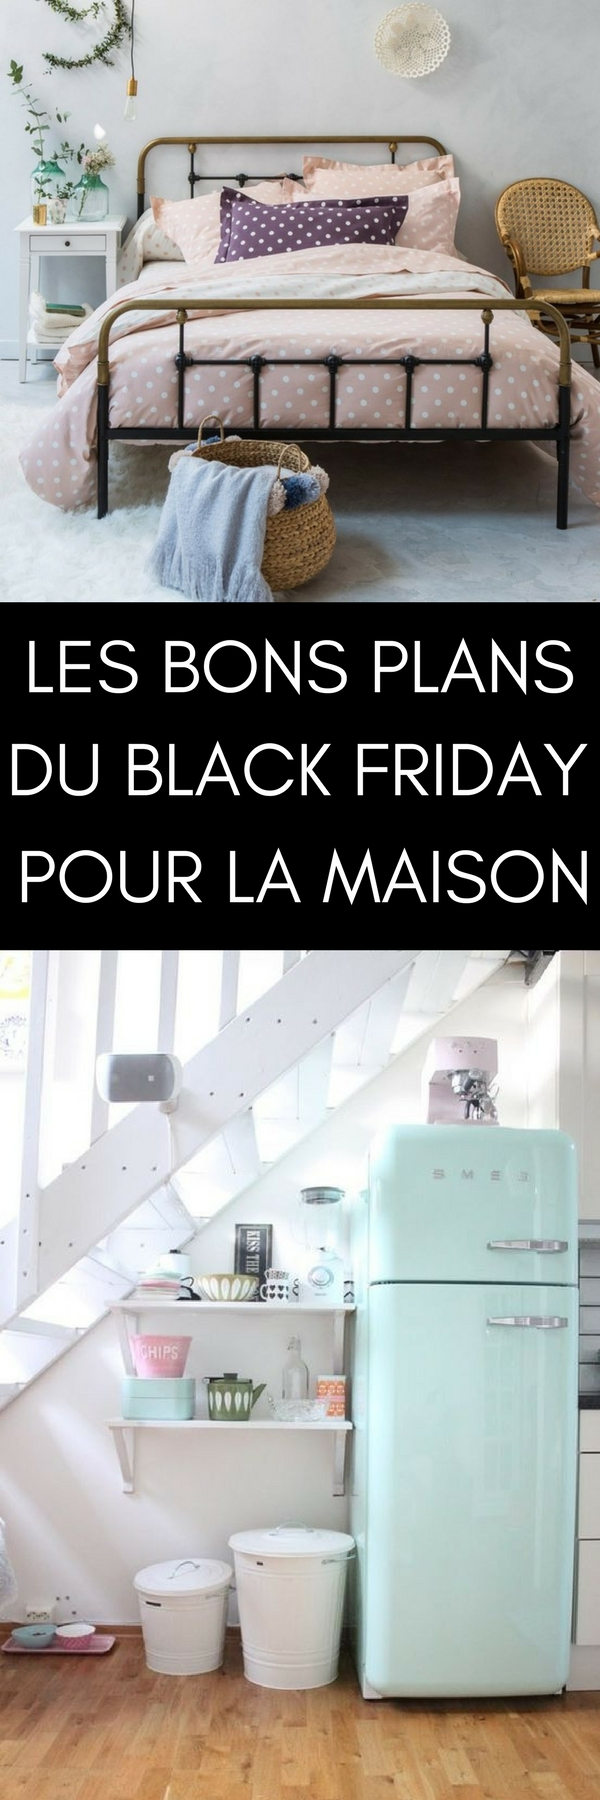 les meilleures offres du black friday pour votre maison meuble canap lectrom nager d co. Black Bedroom Furniture Sets. Home Design Ideas